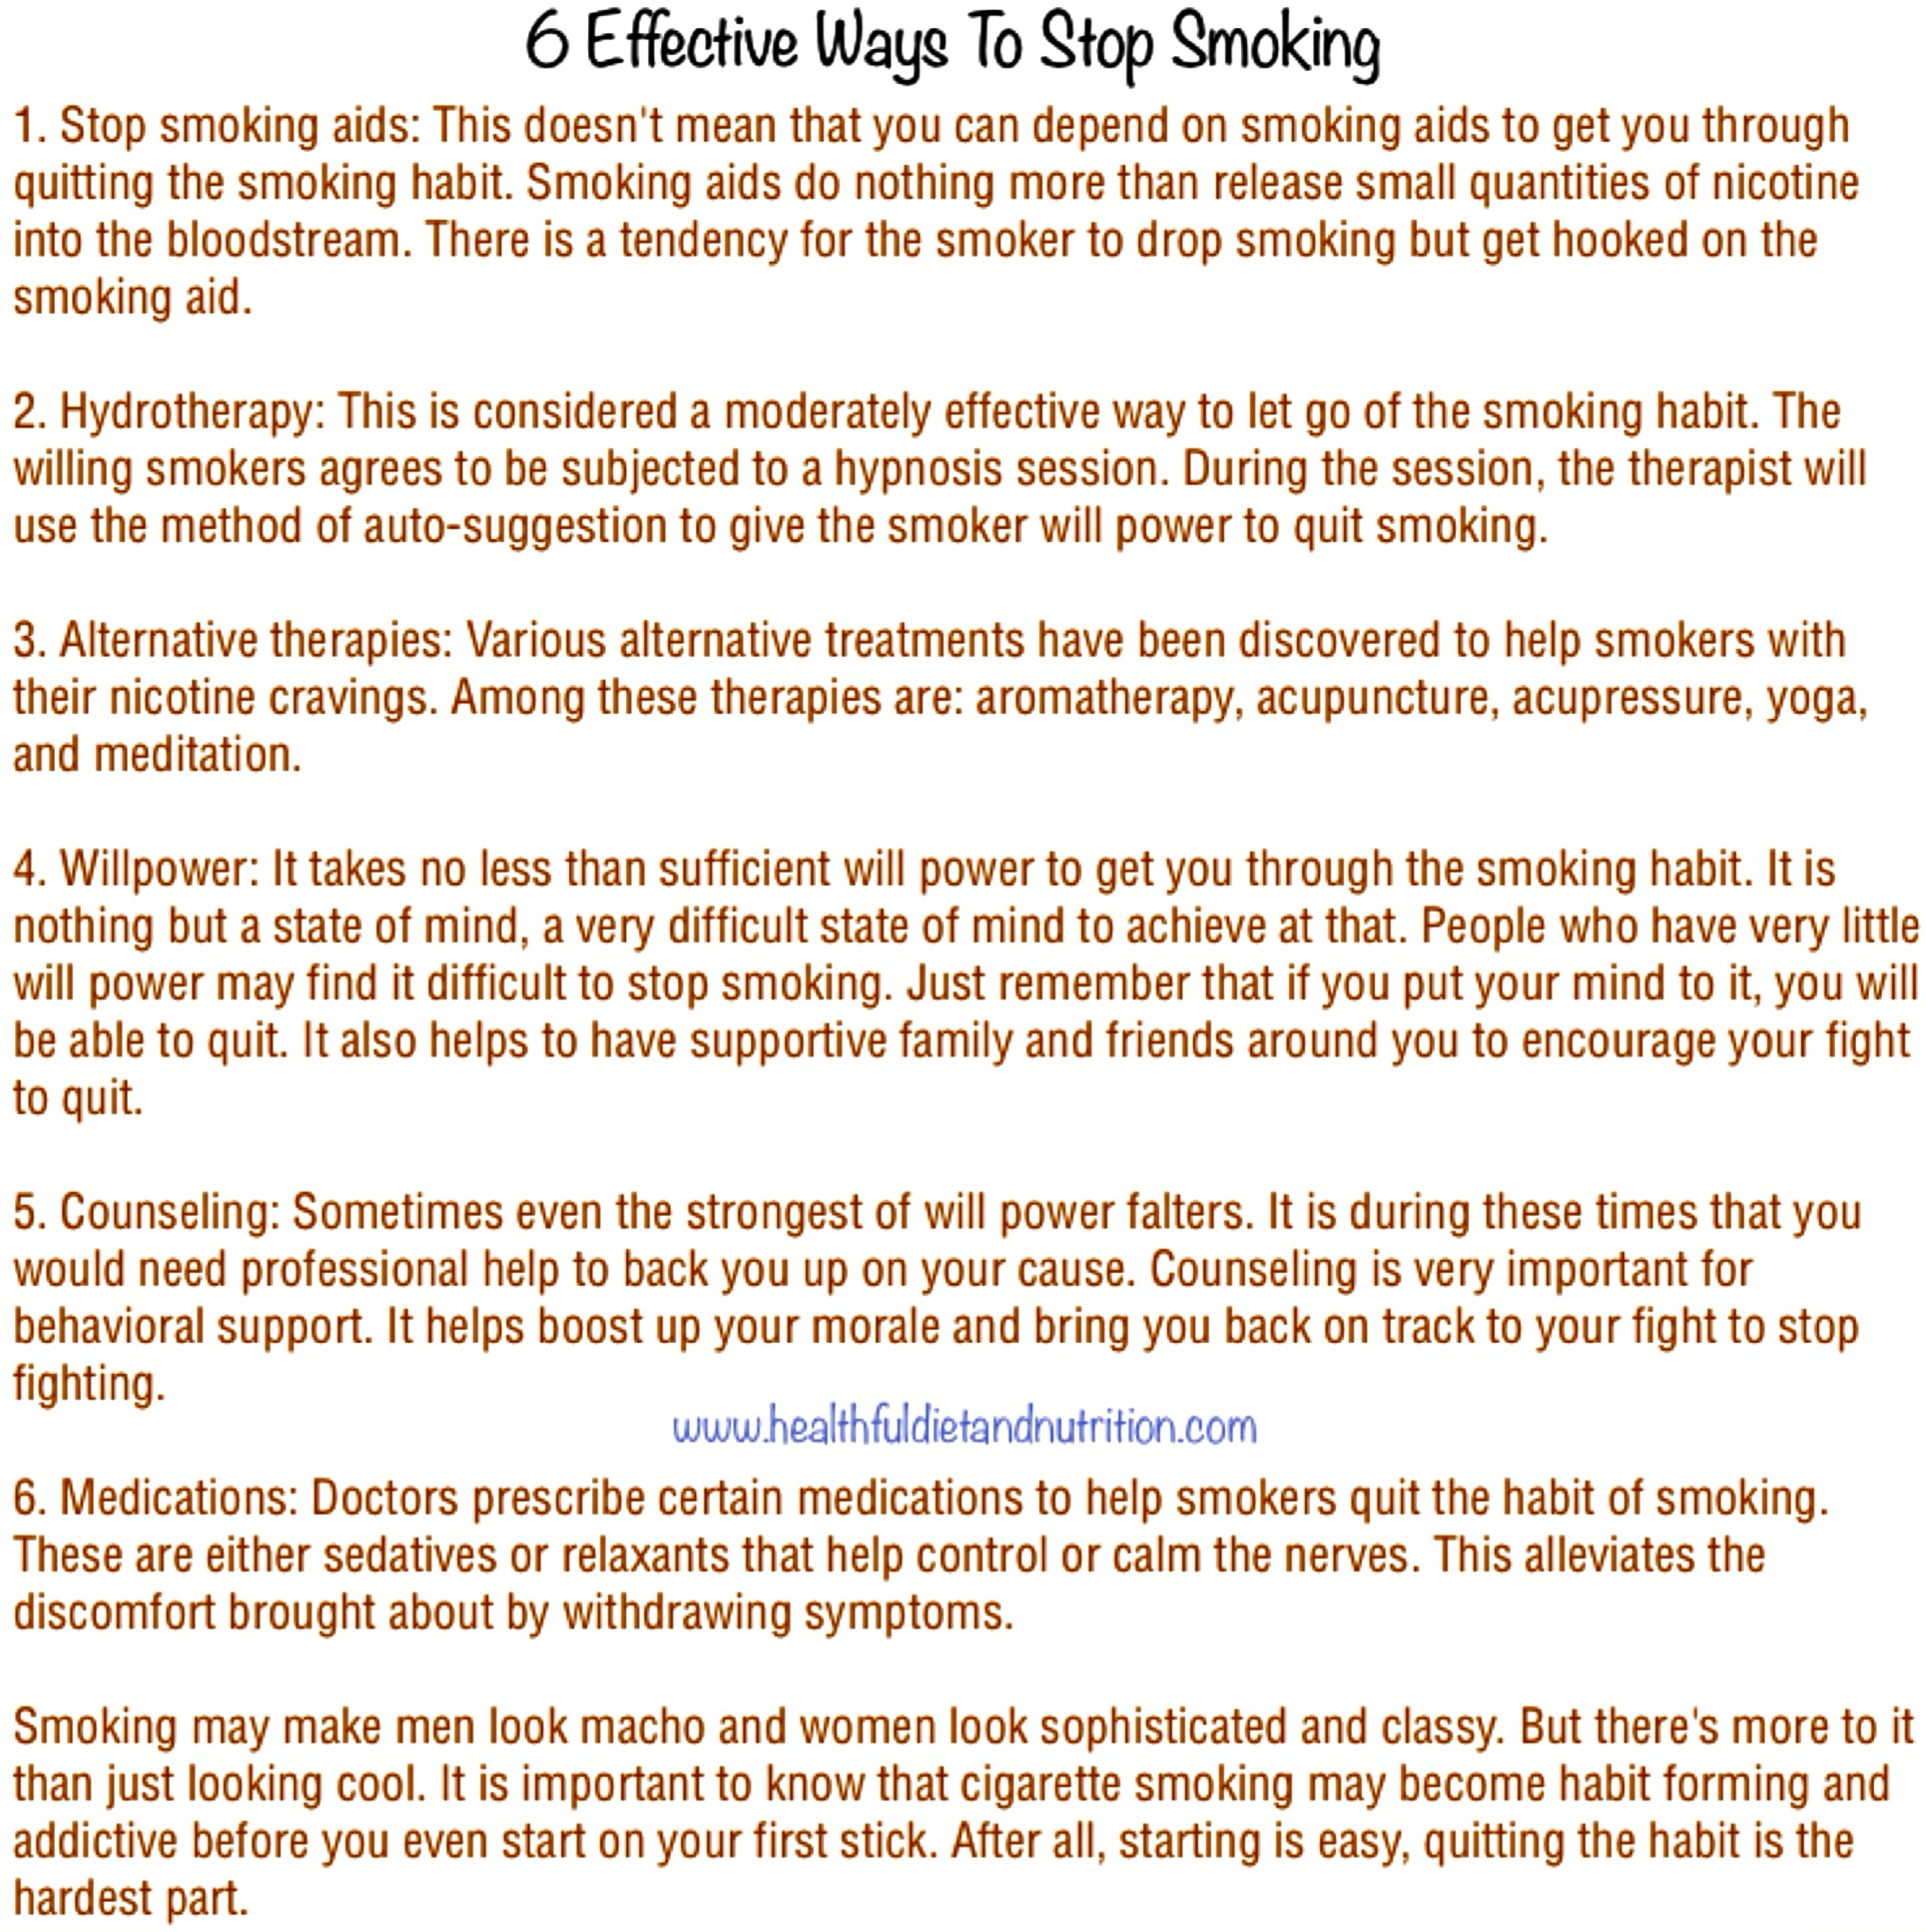 6 Effective Ways To Stop Smoking